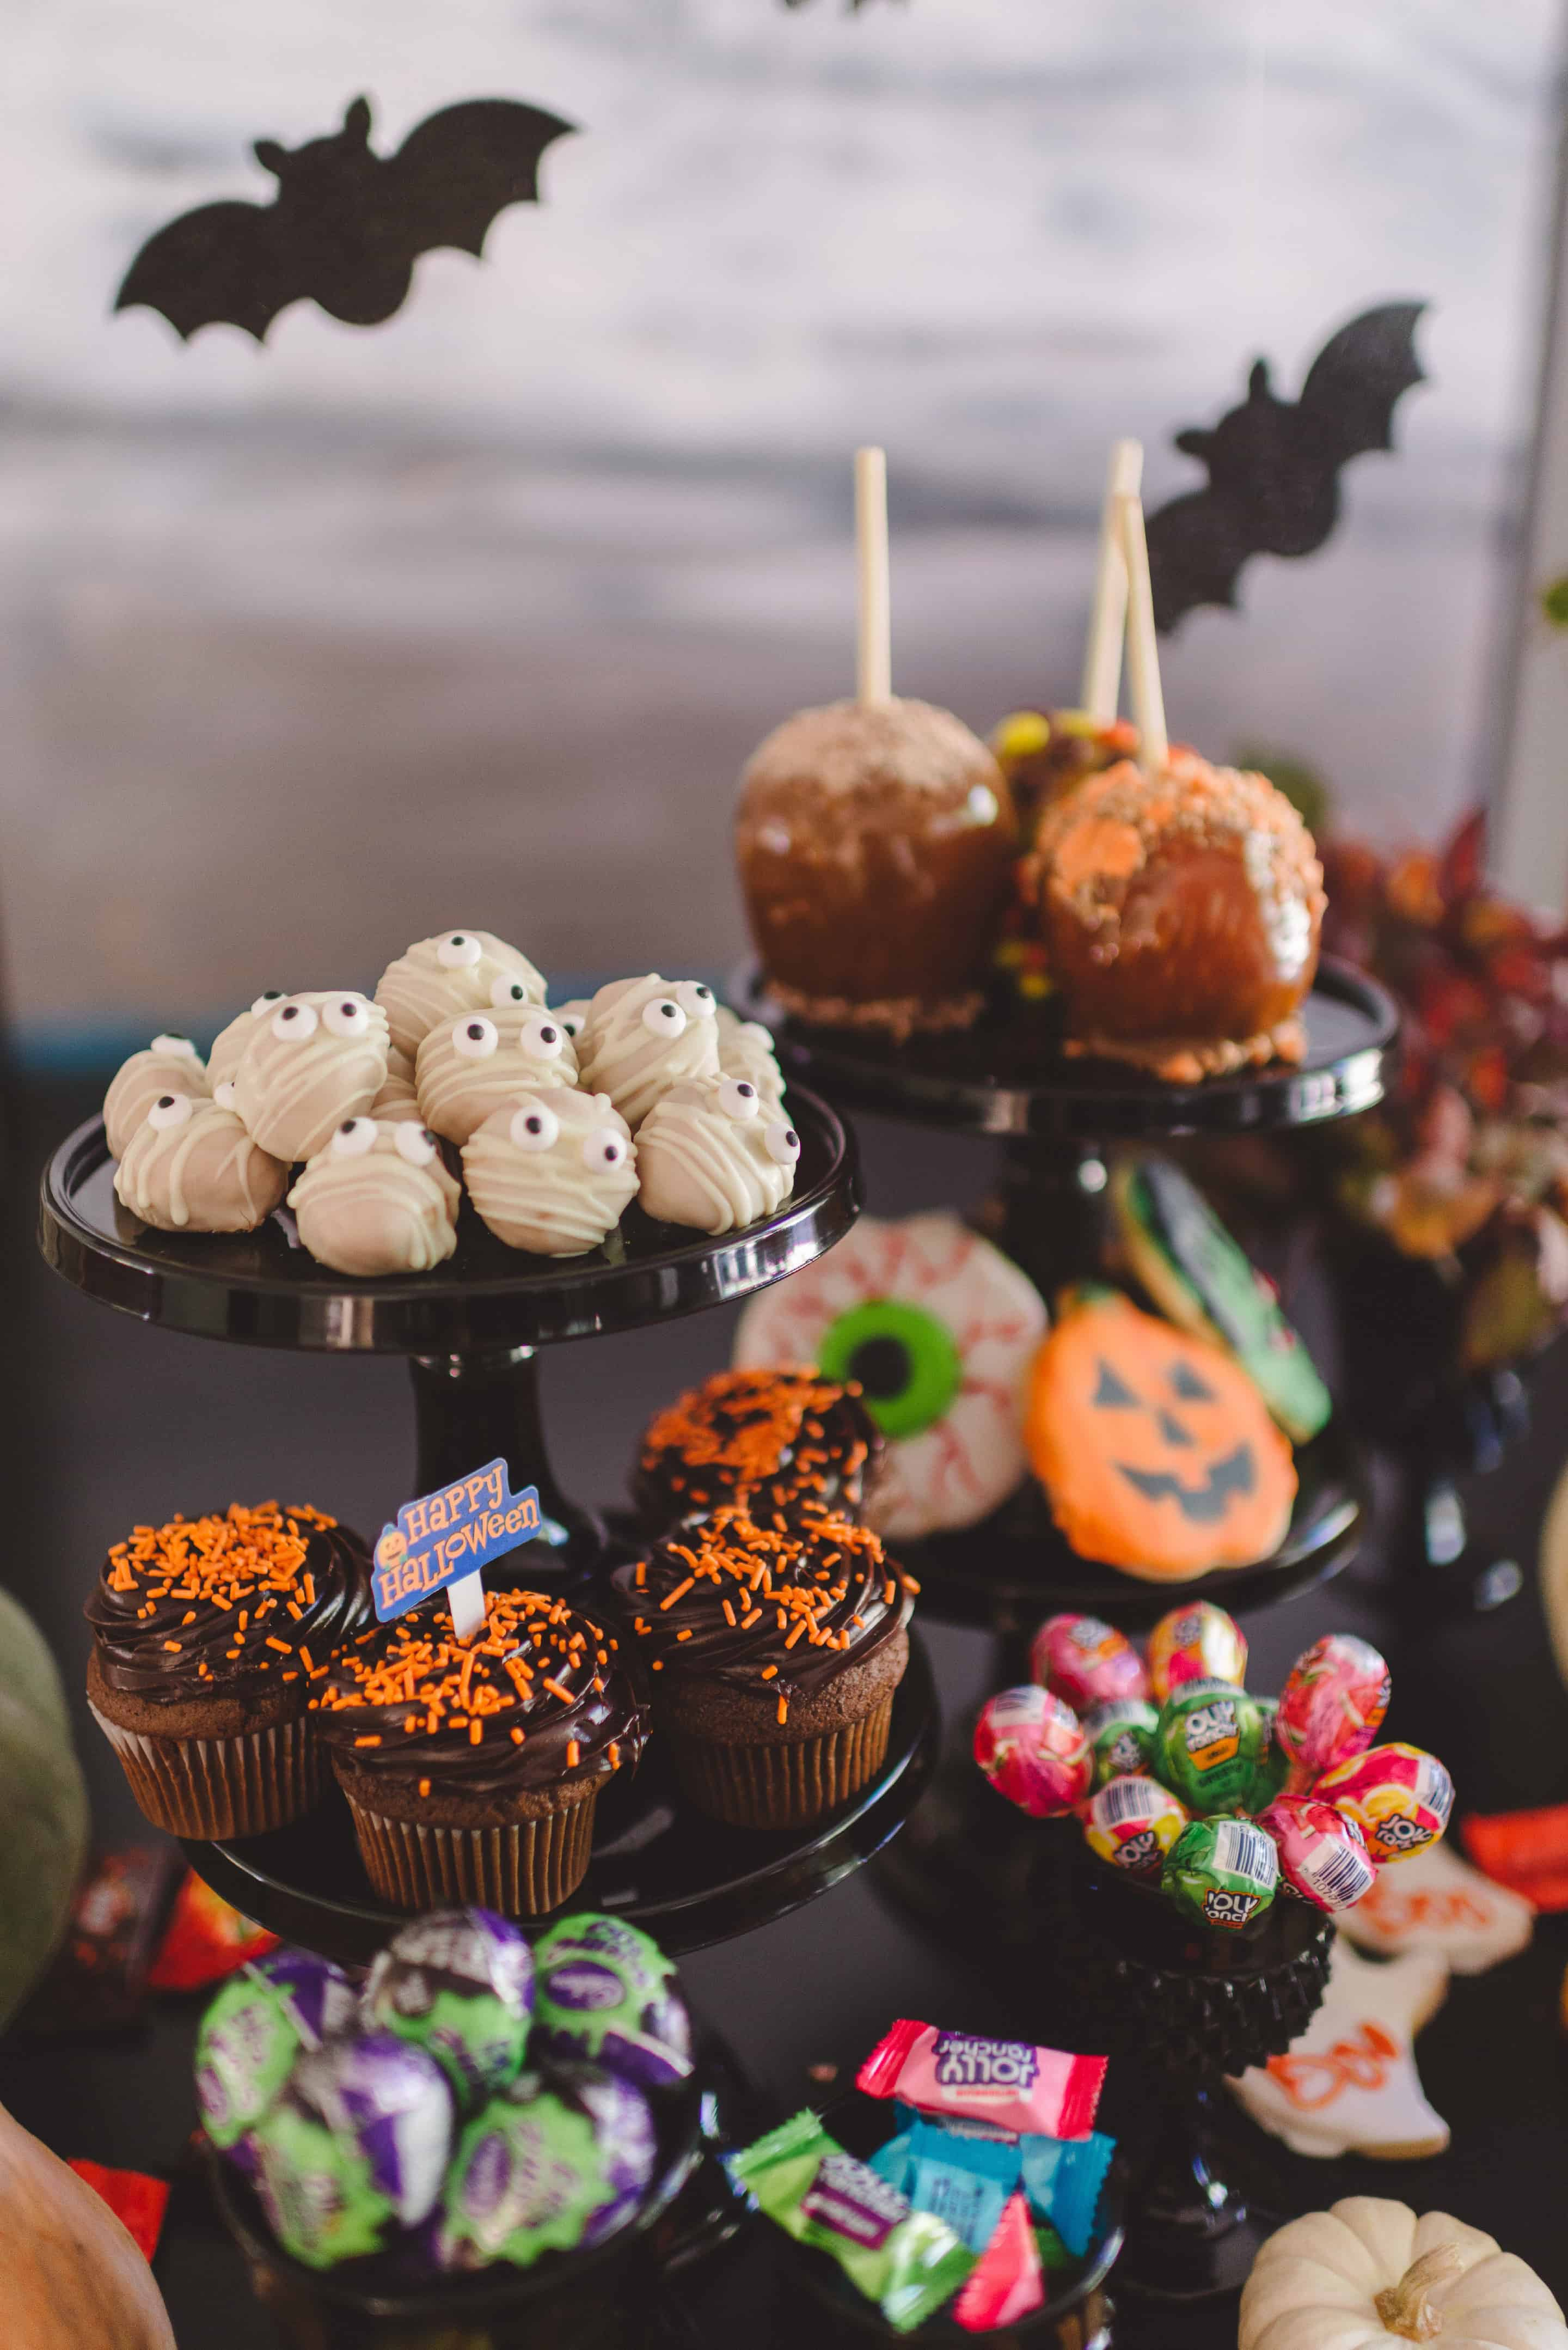 Hershey Halloween by Tiffani Thiessen • Photo by Rebecca Sanabria